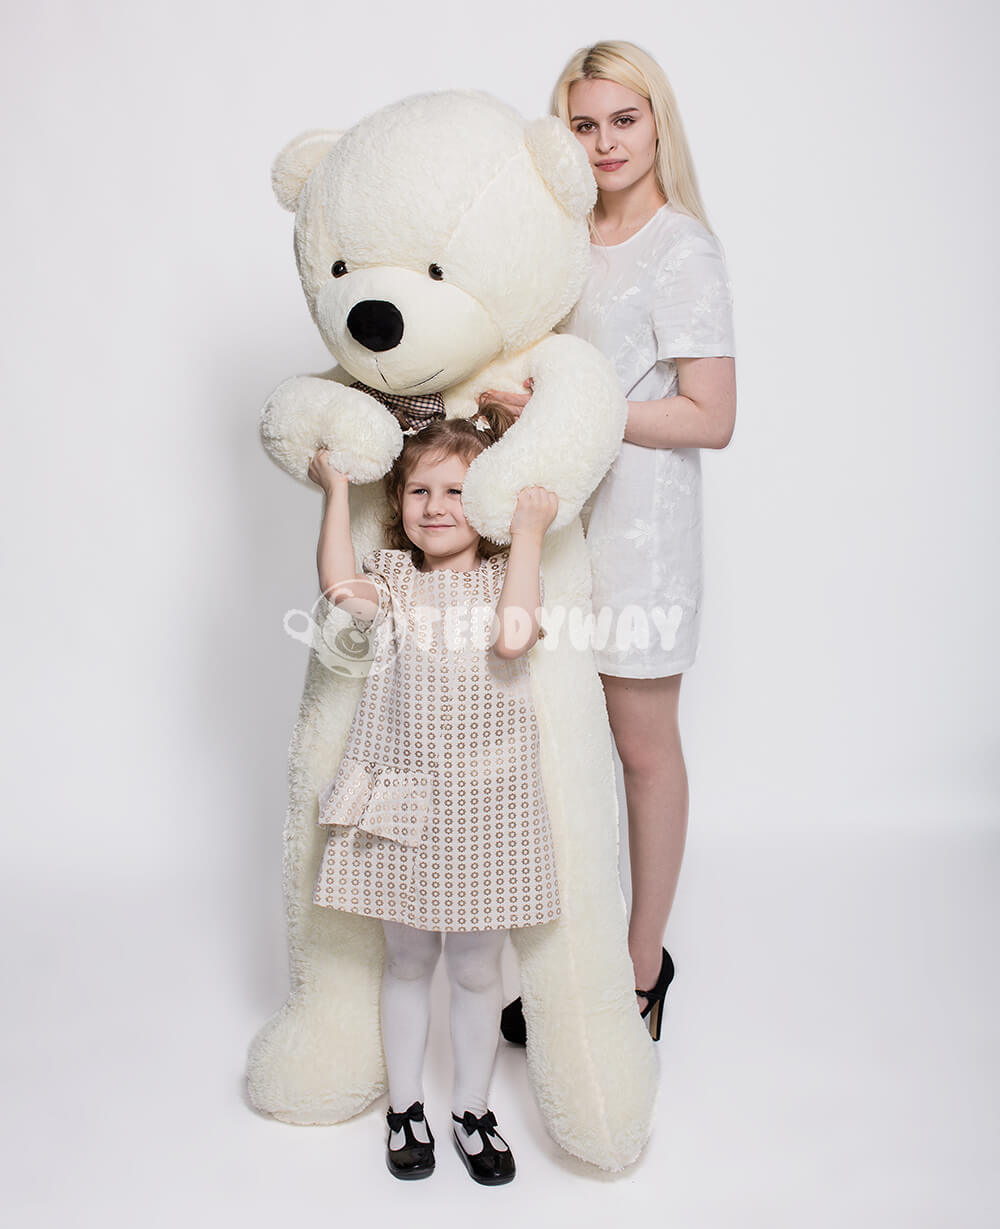 Huge Giant Teddy Bear - Huge Big Teddy Bears 100 CM - TEDDYWAY